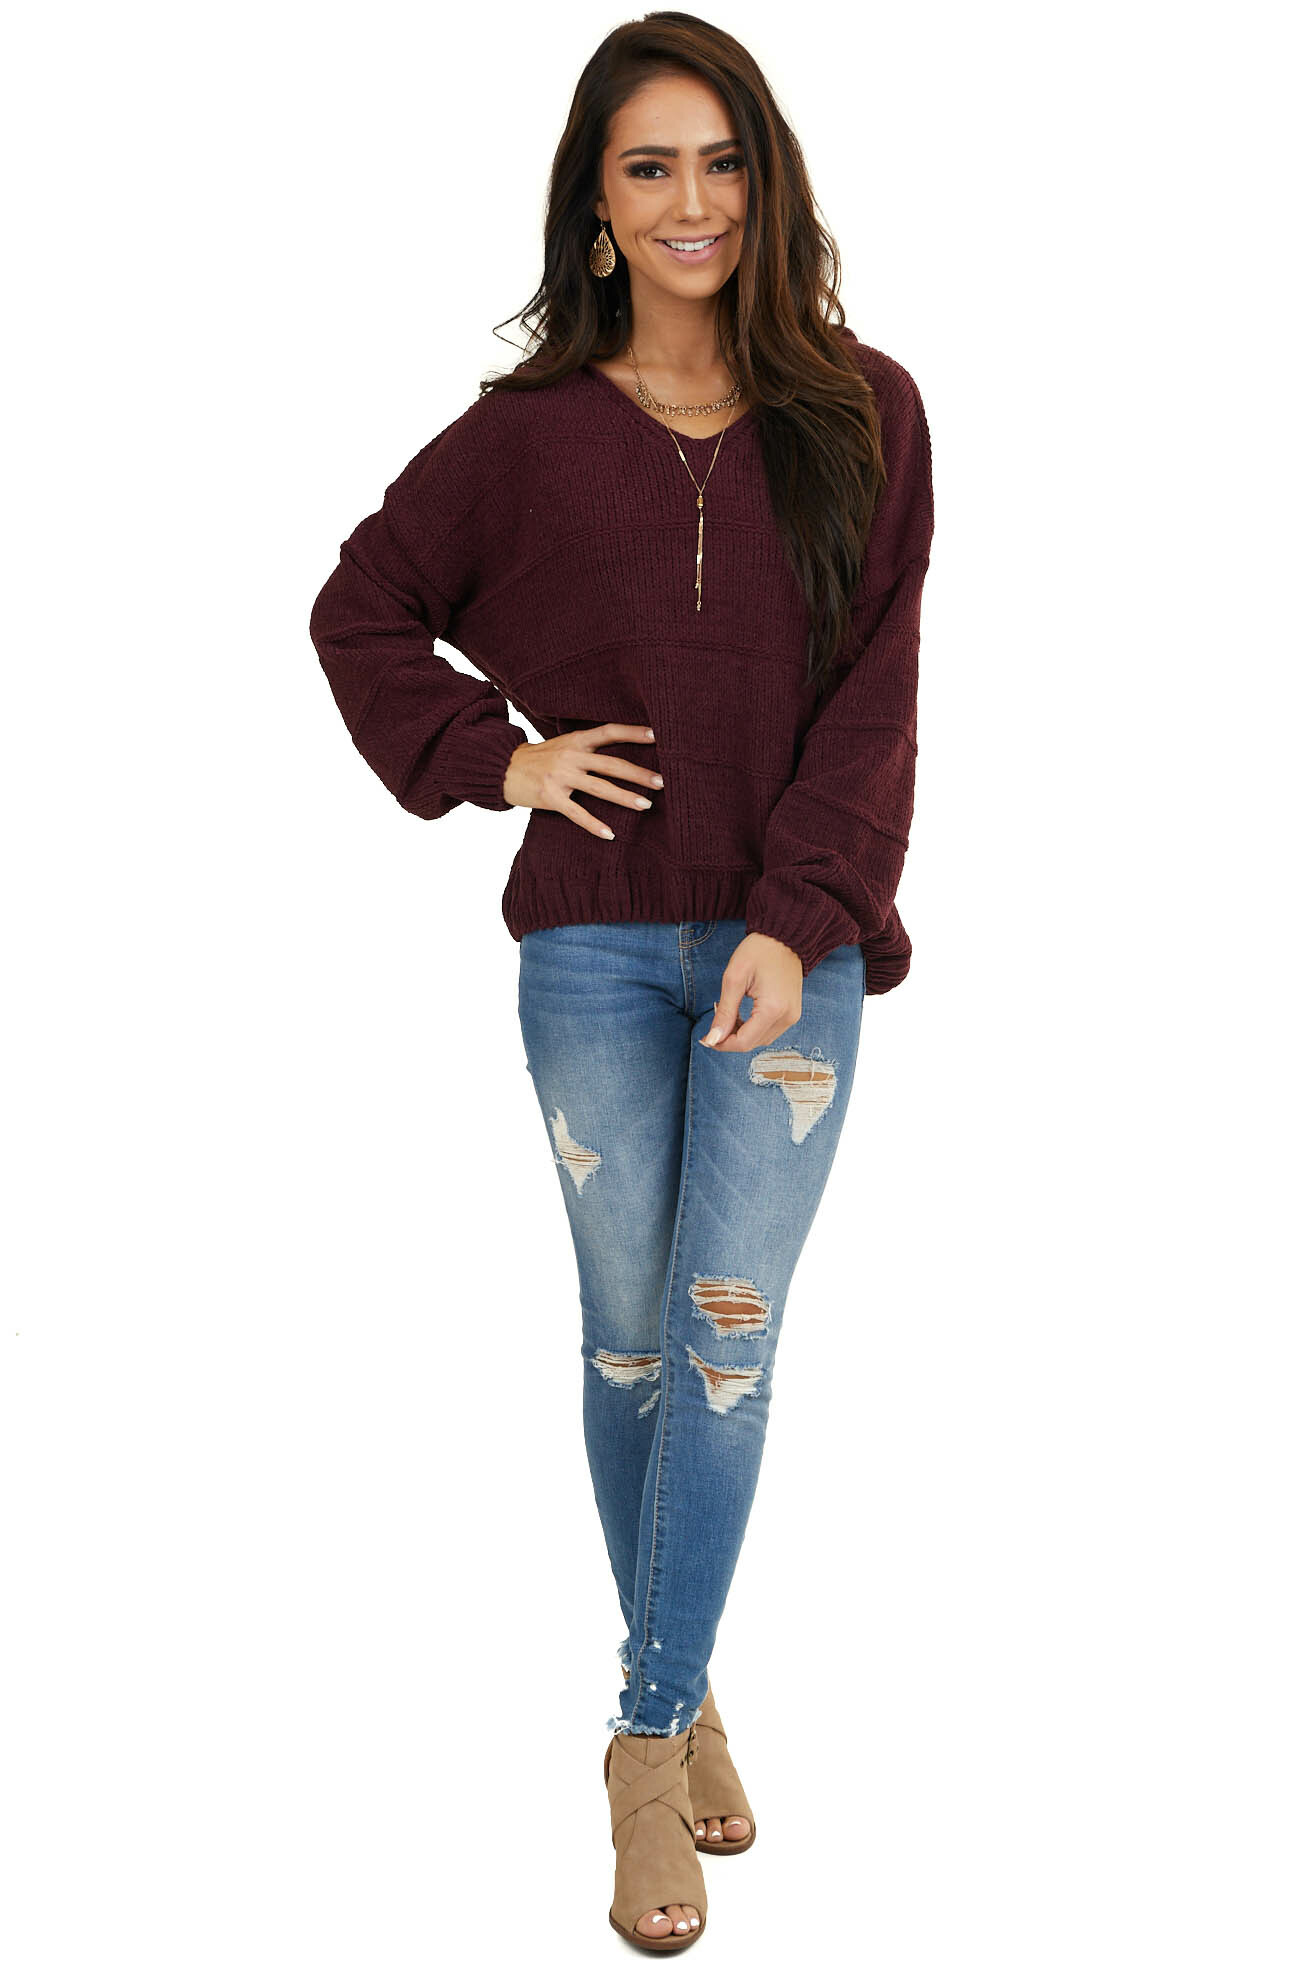 Mahogany Chenille Sweater with Hood and Cable Knit Detail